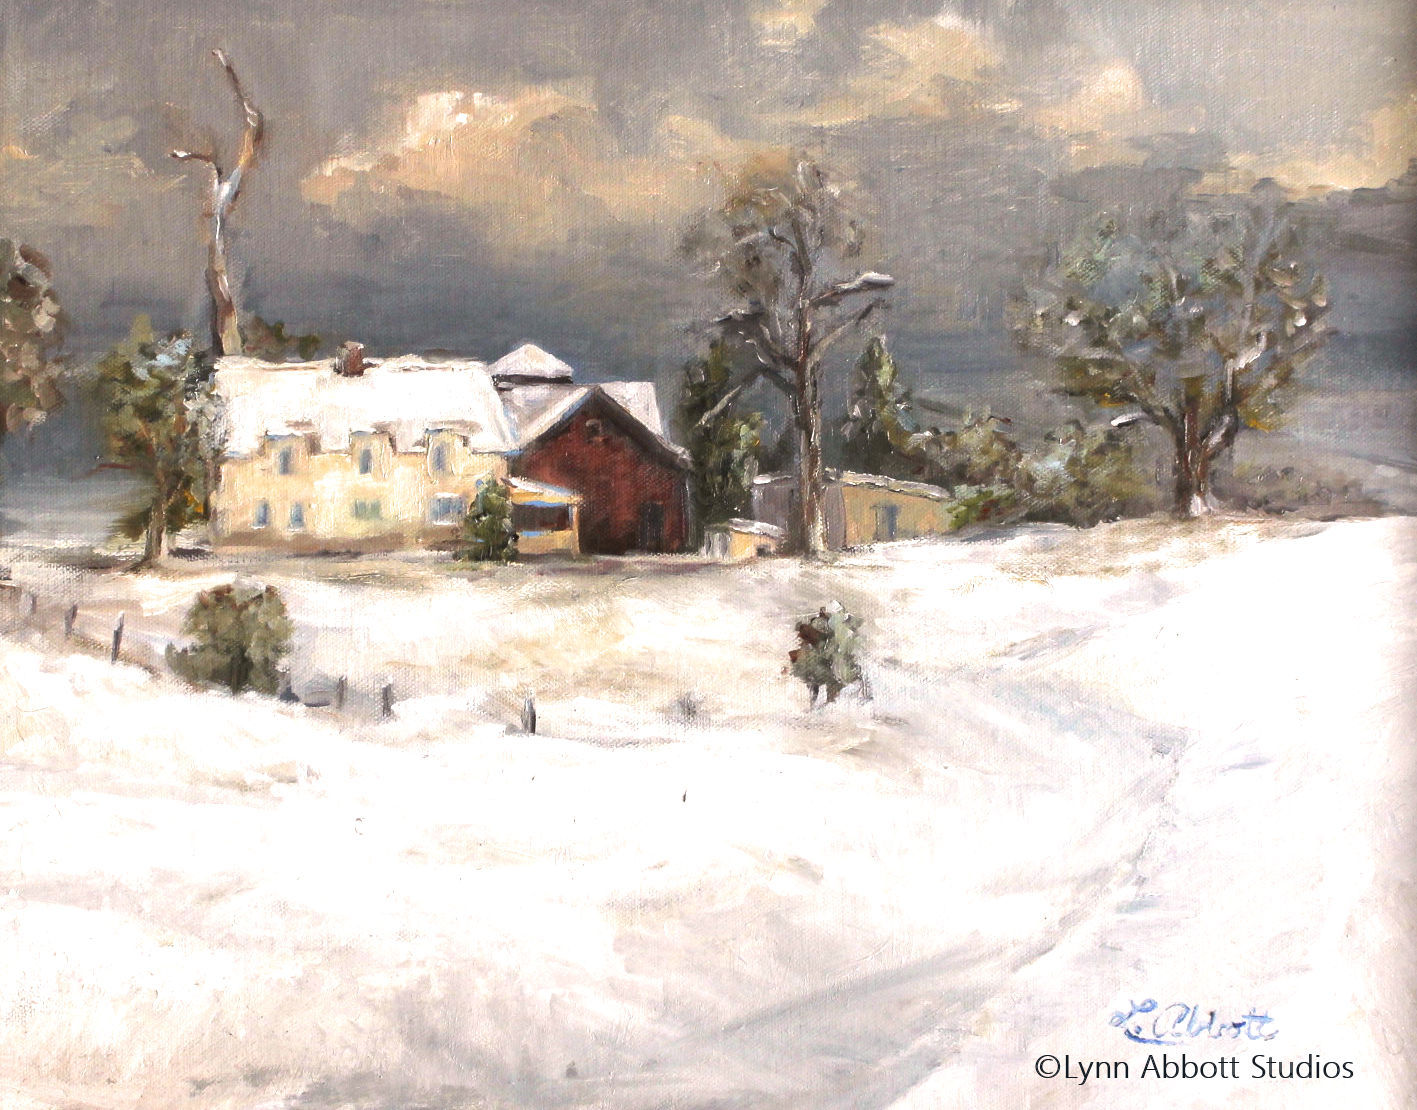 First Snow, Lynn Abbott